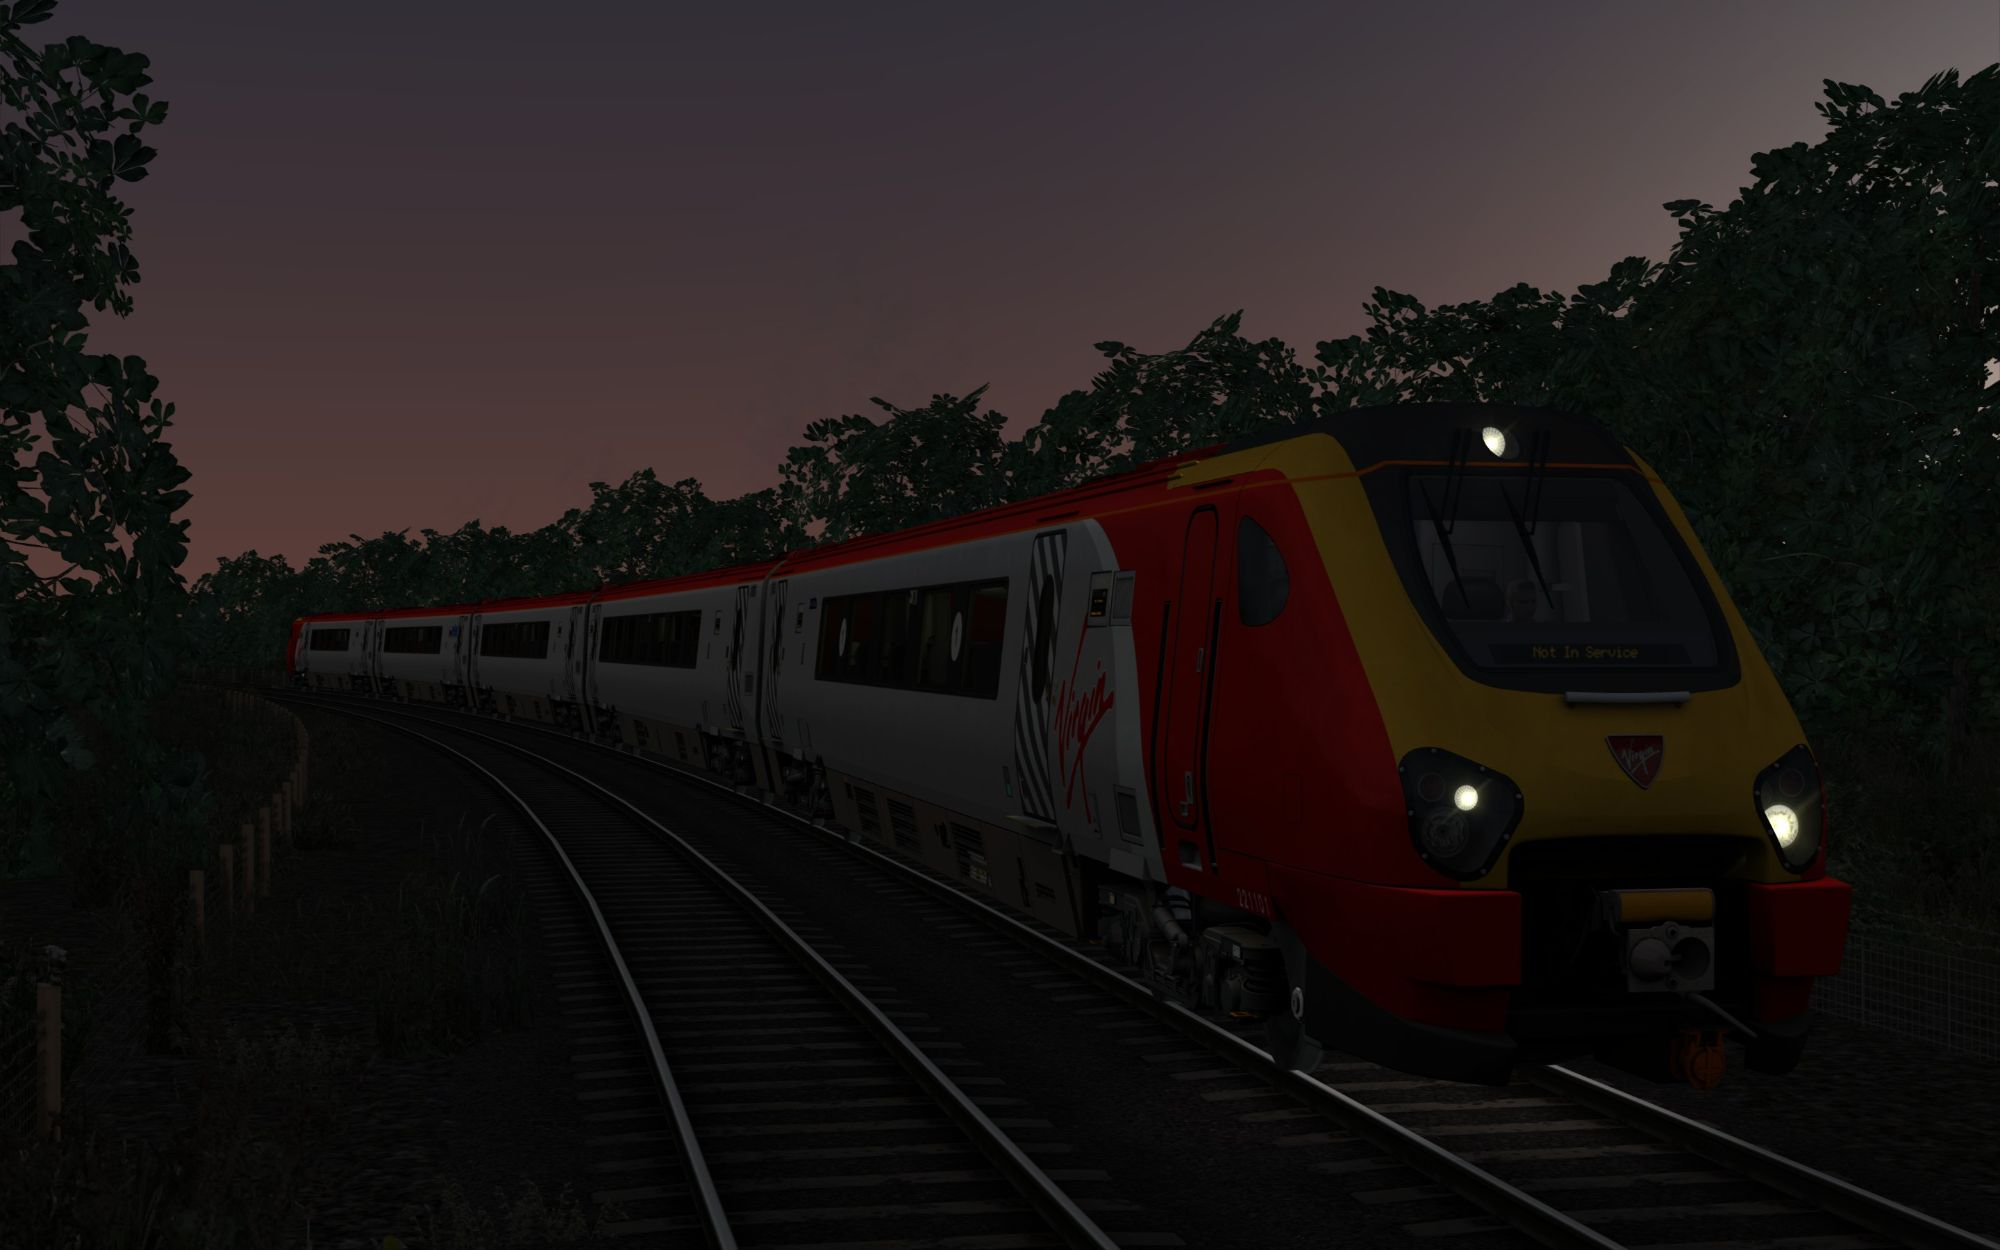 Image showing screenshot of the 5K32 - 2110 Wrexham General to Crewe CS scenario